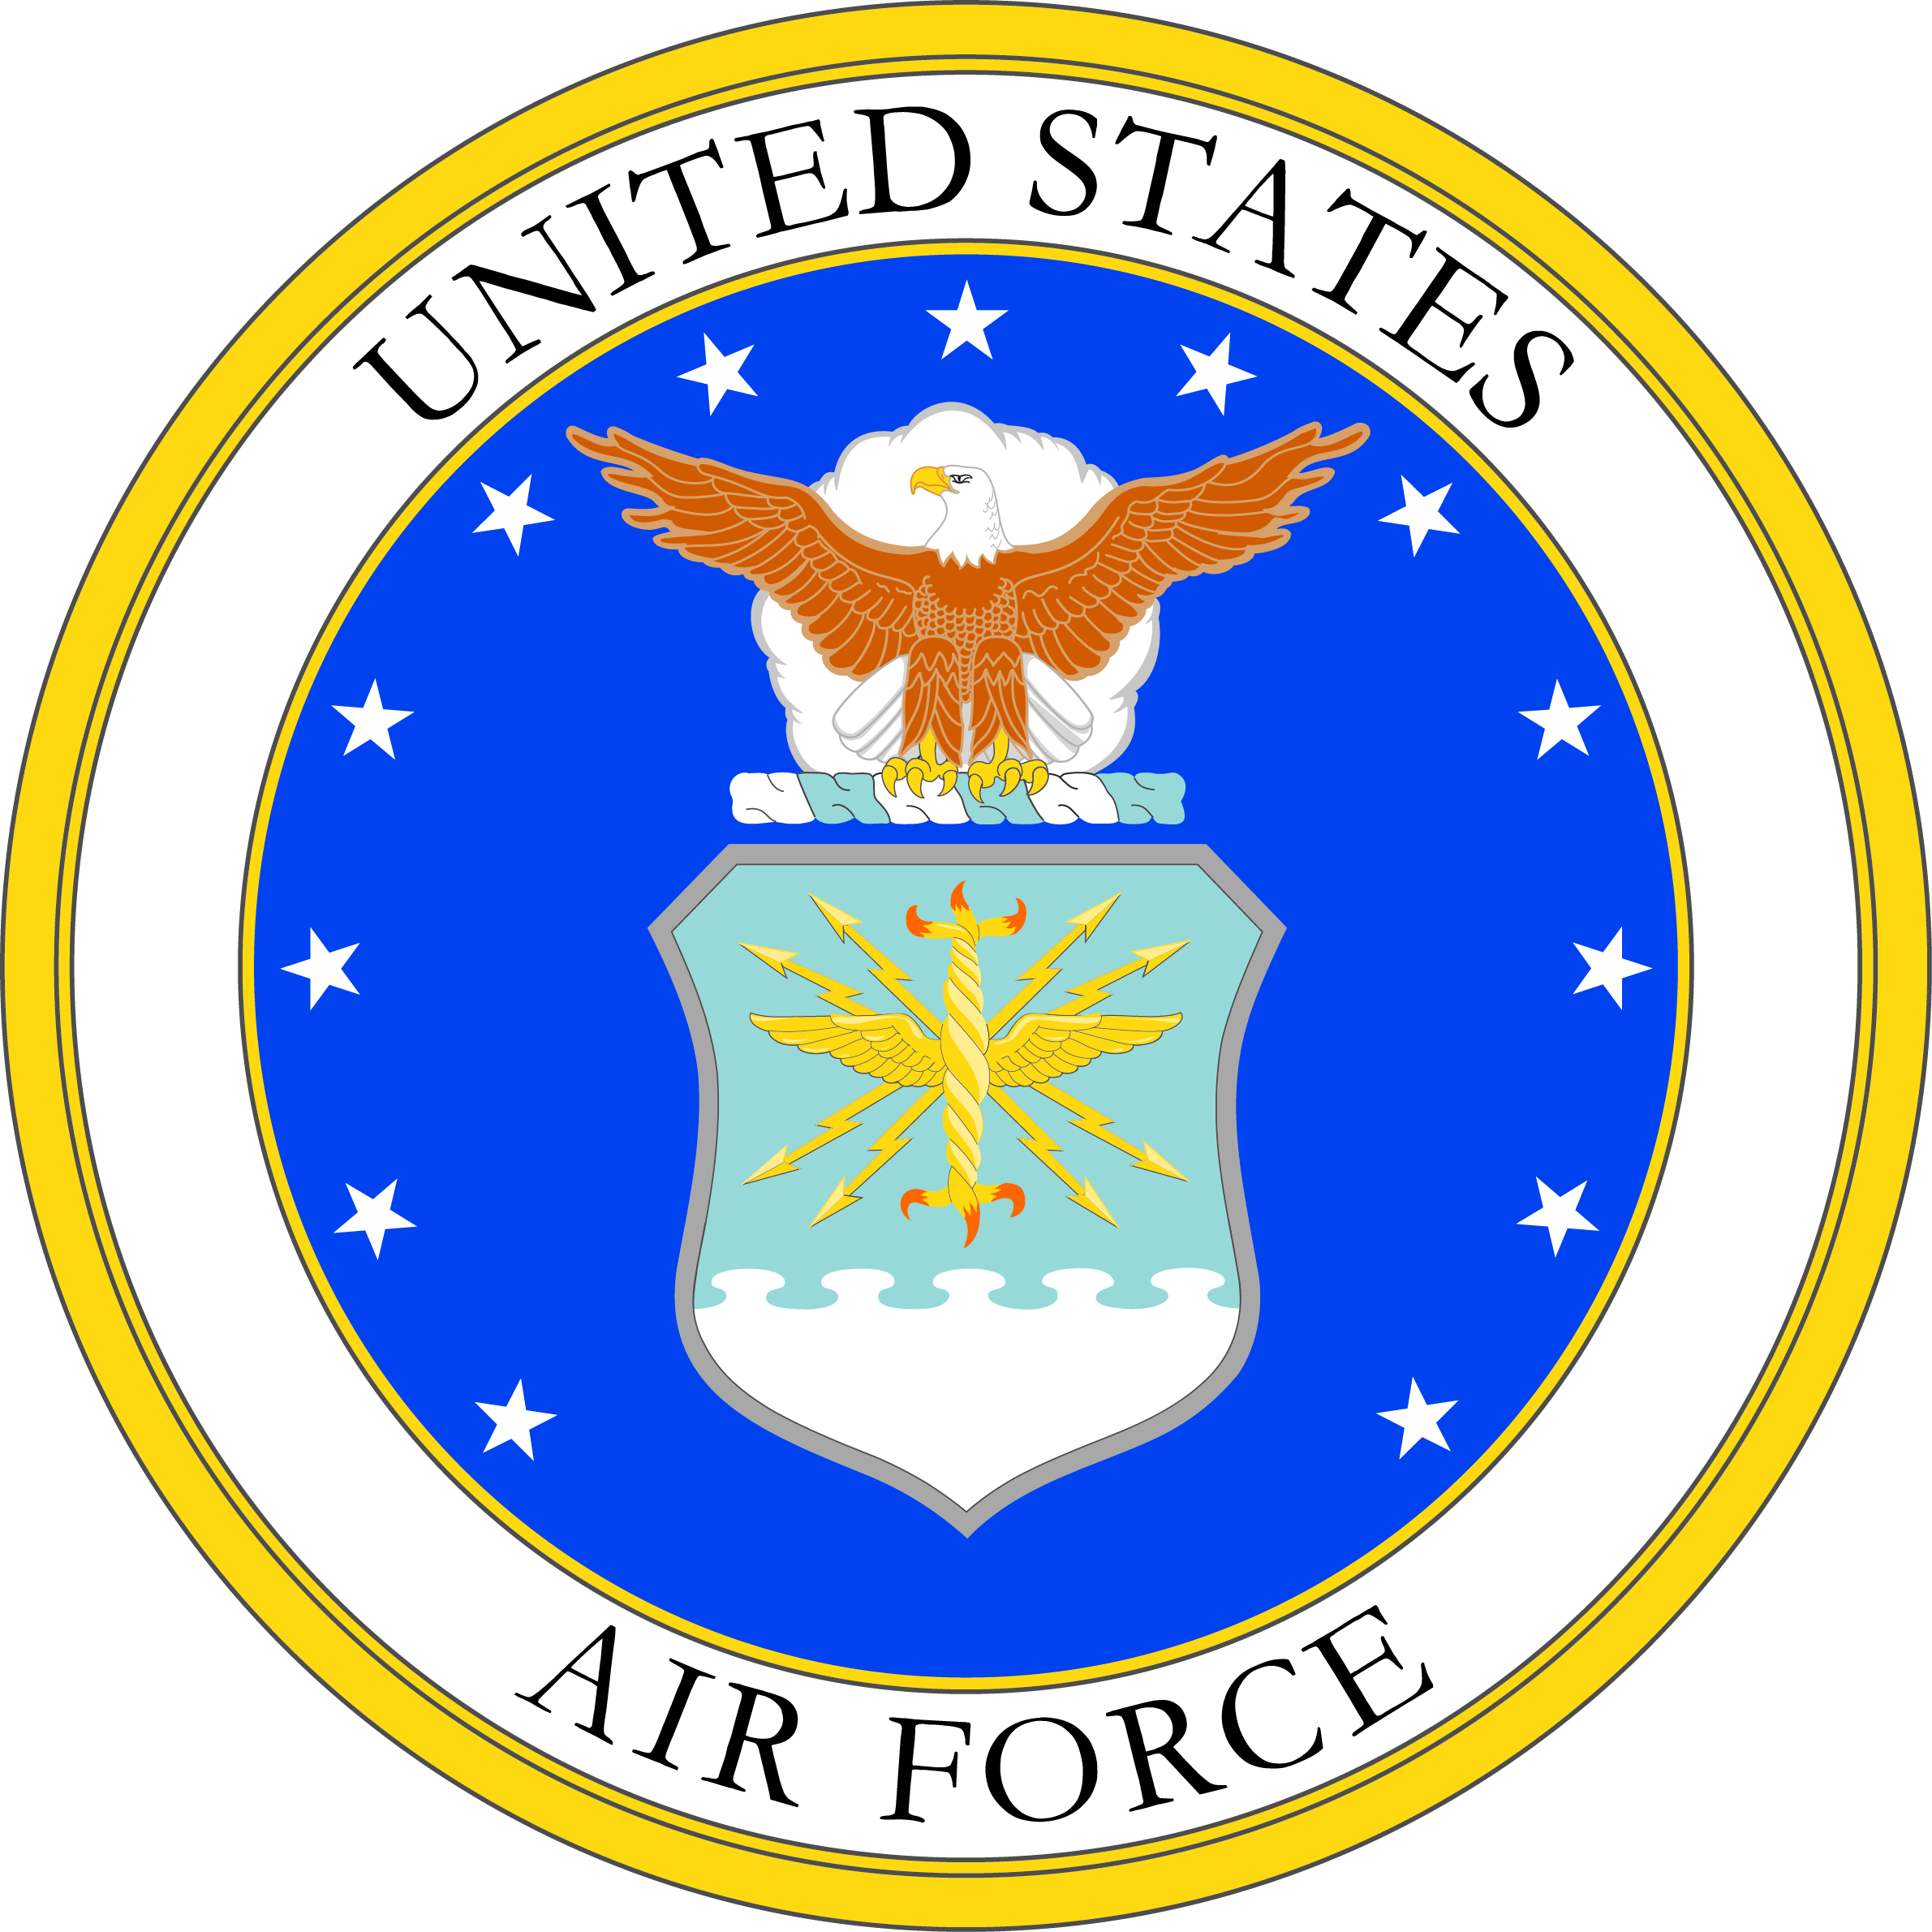 United states clipart air force. File military service mark